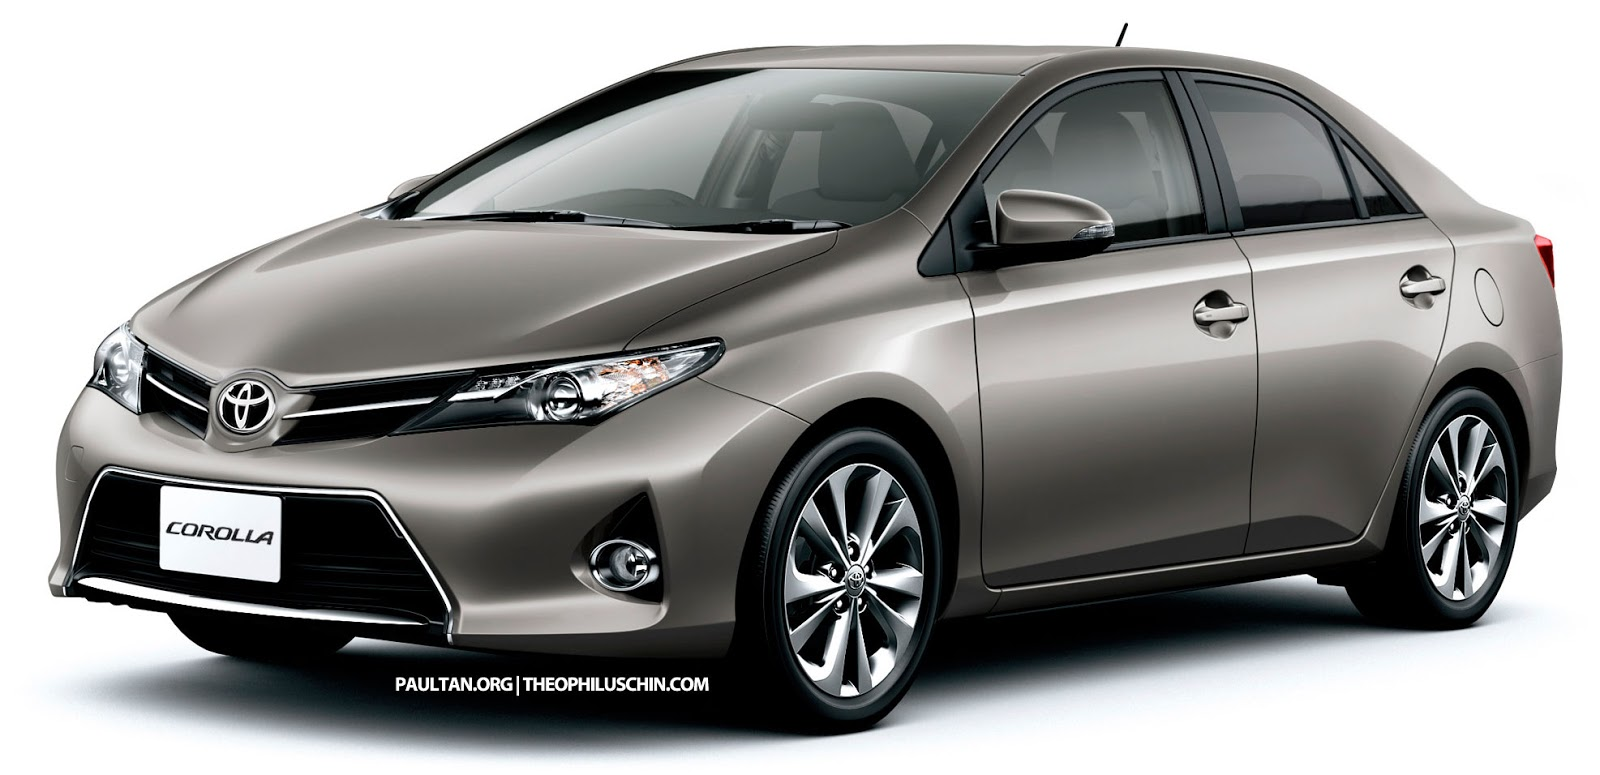 2014 toyota corolla. Black Bedroom Furniture Sets. Home Design Ideas